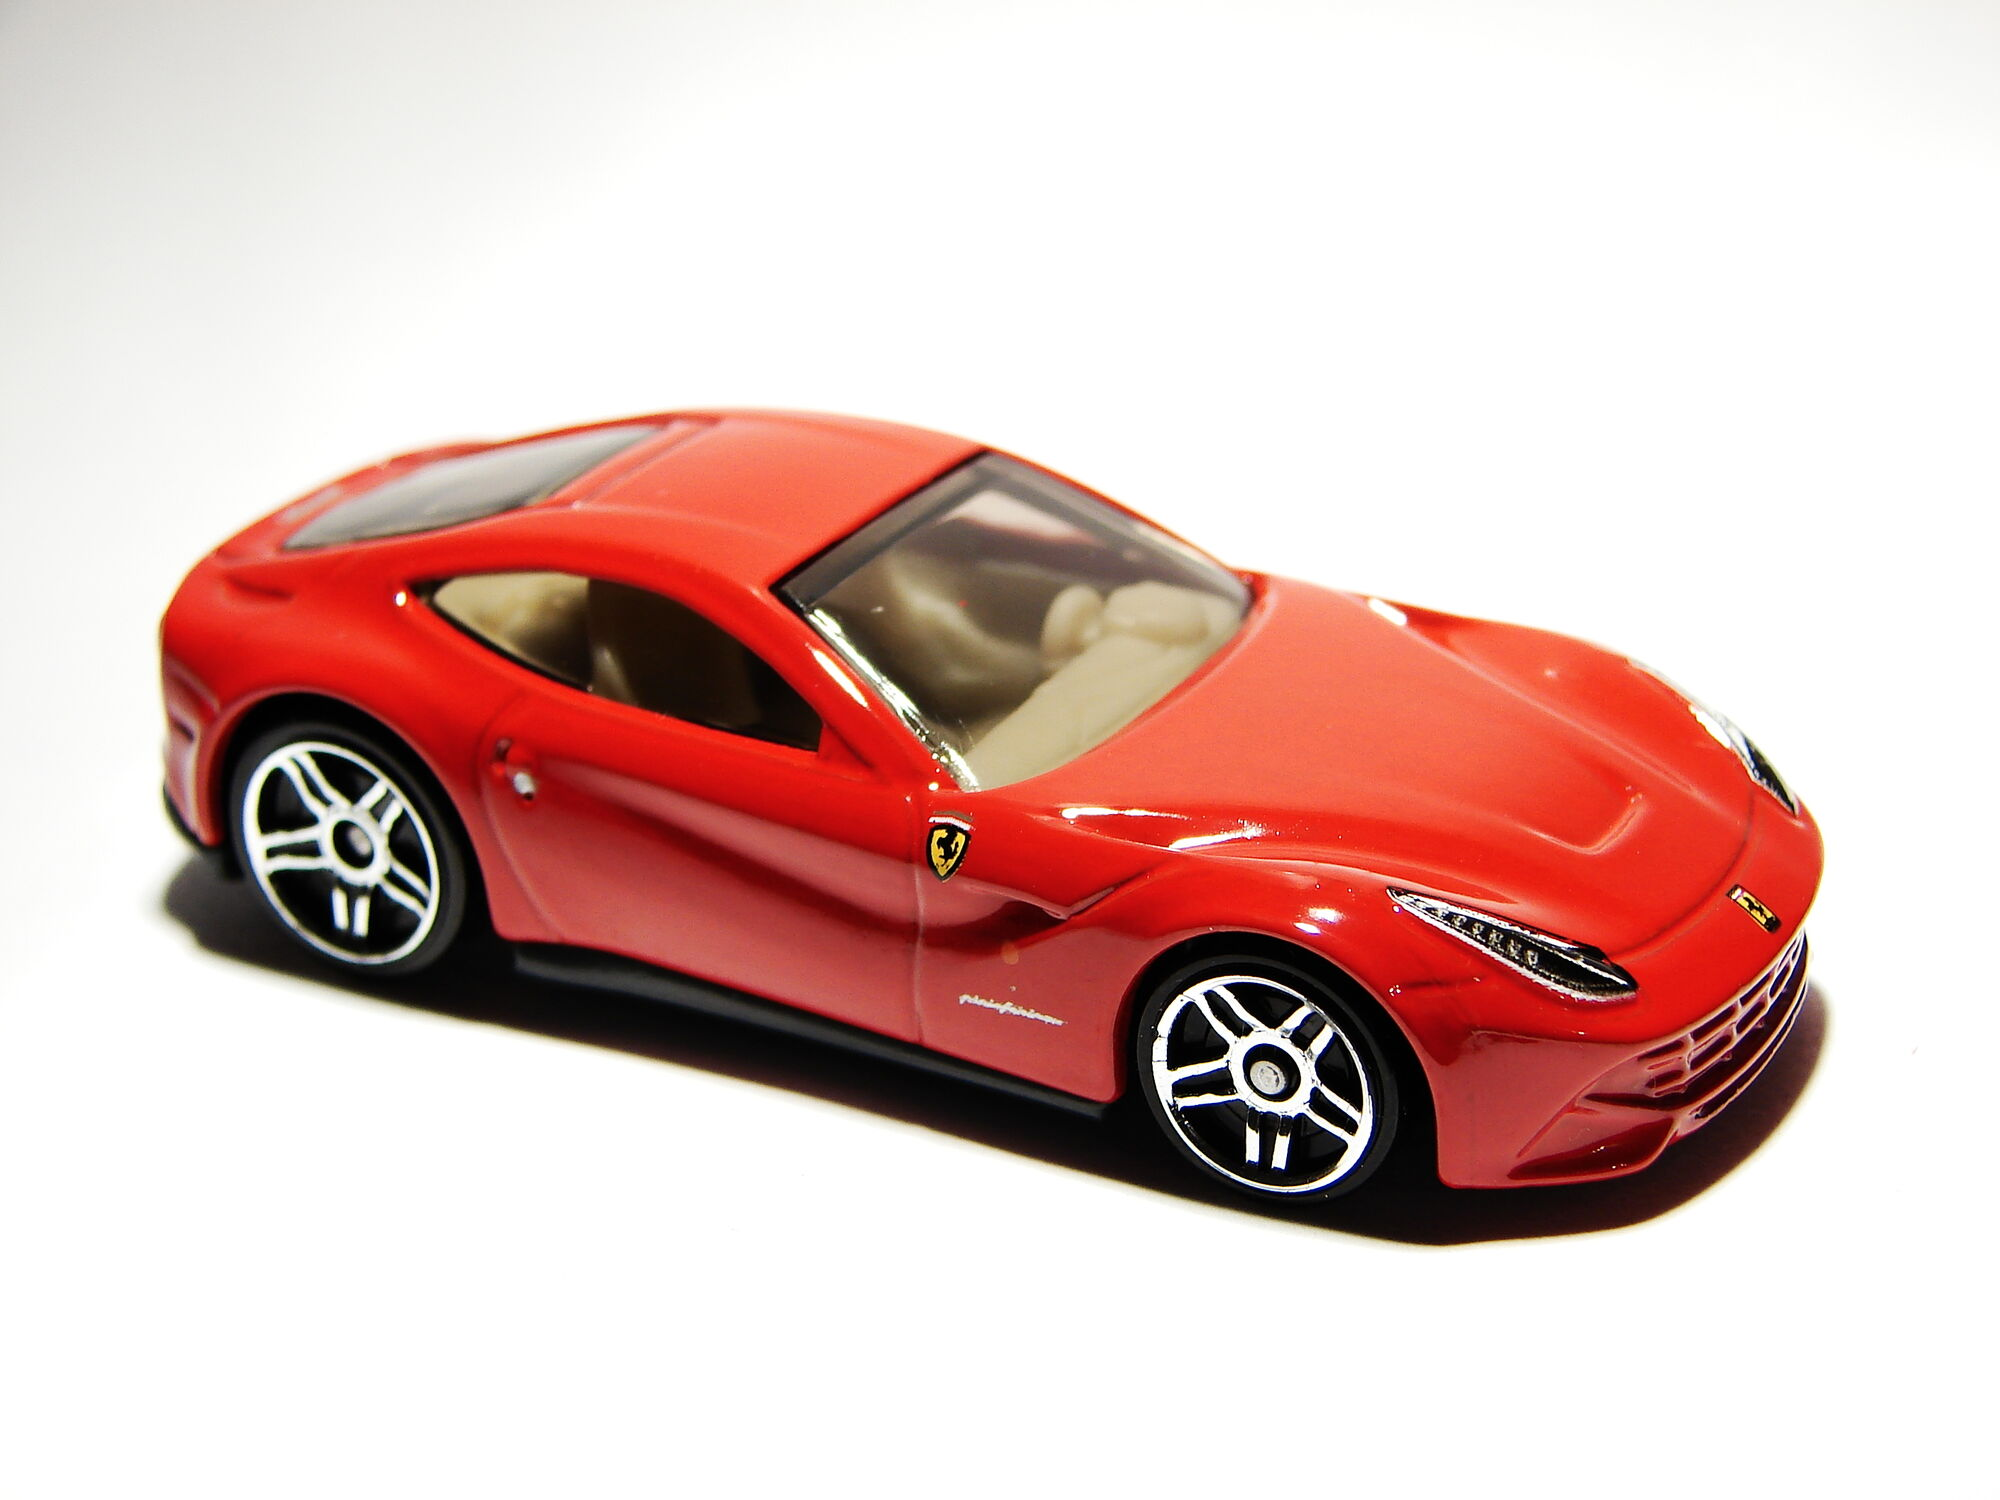 ferrari f12berlinetta hot wheels wiki fandom powered. Black Bedroom Furniture Sets. Home Design Ideas